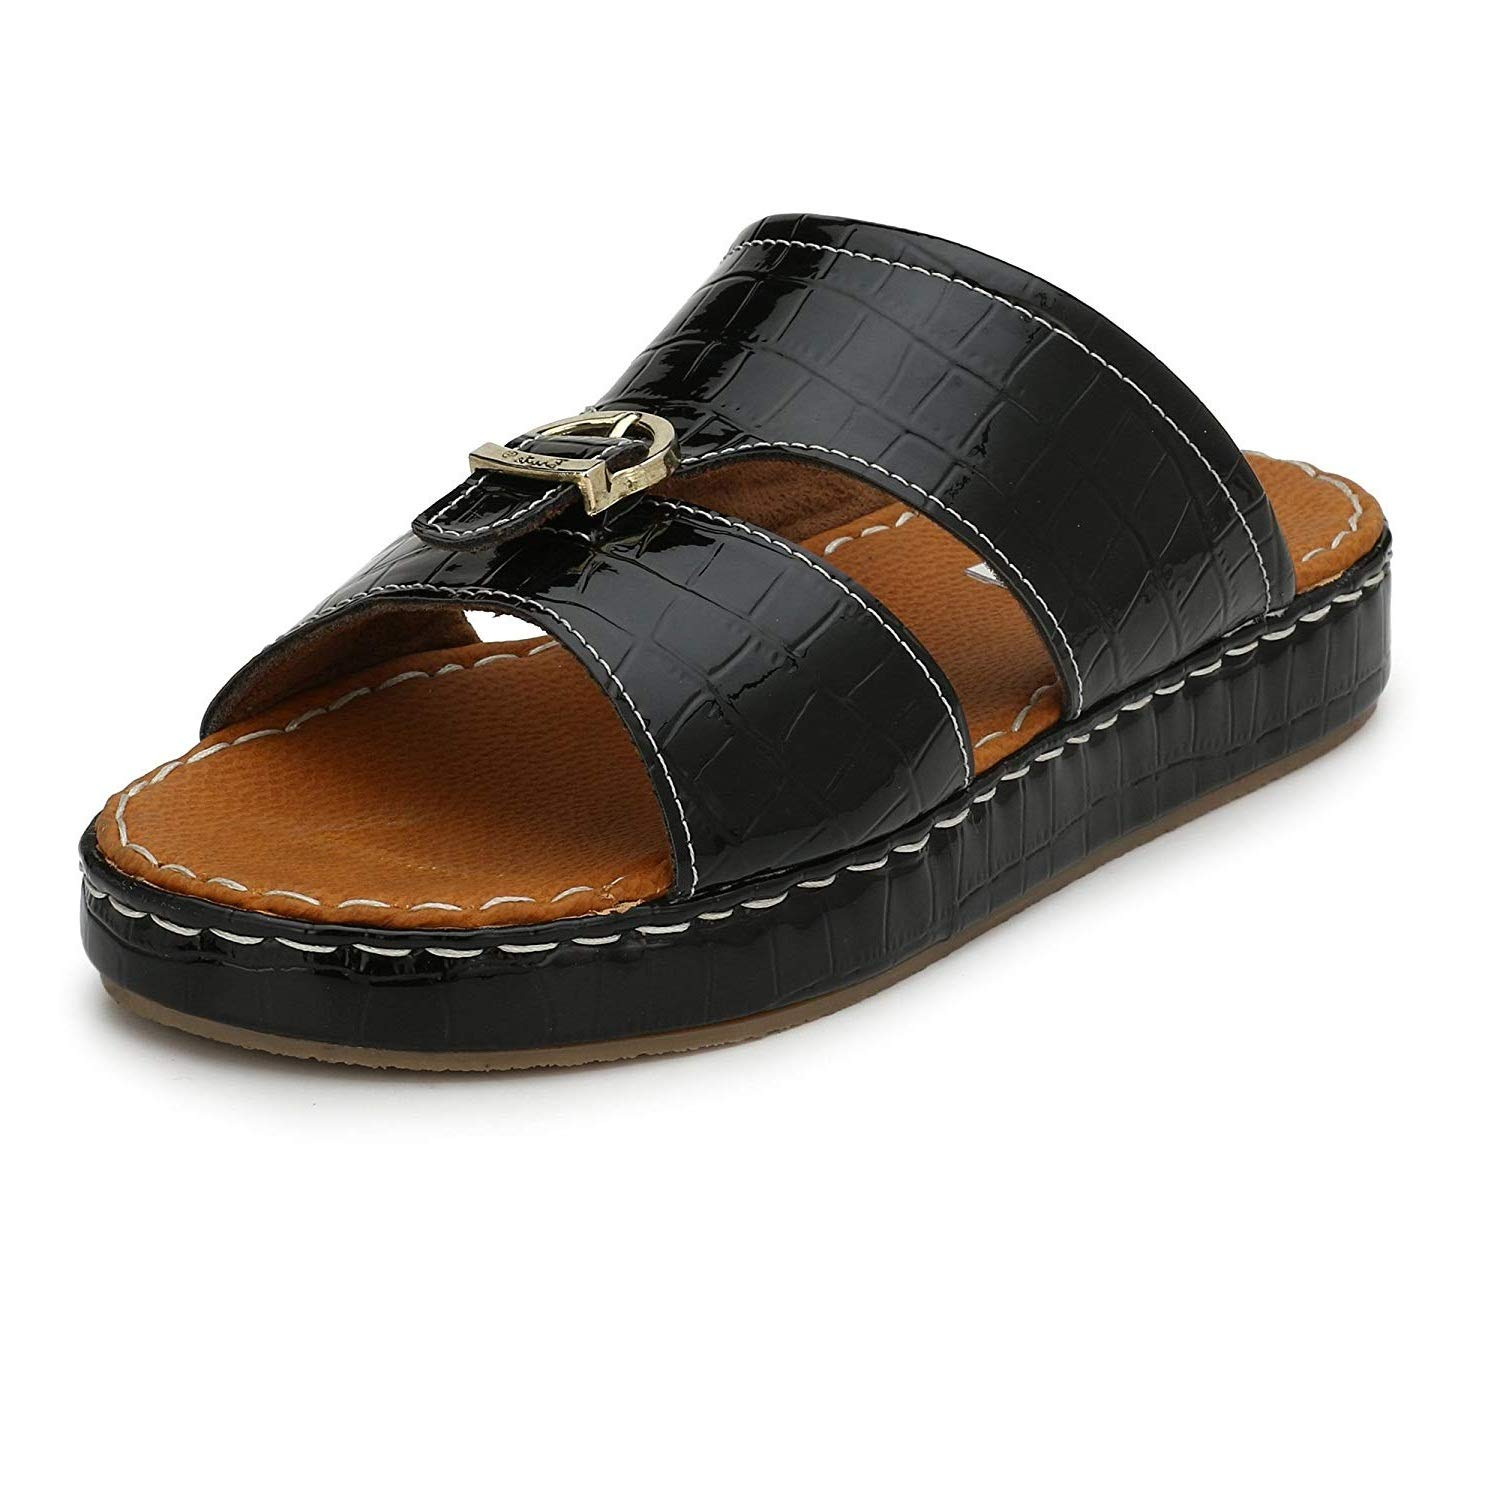 ad3e07f3d3be Asken Atelier Arabic Sandal for Men  Buy Online at Low Prices in India -  Amazon.in